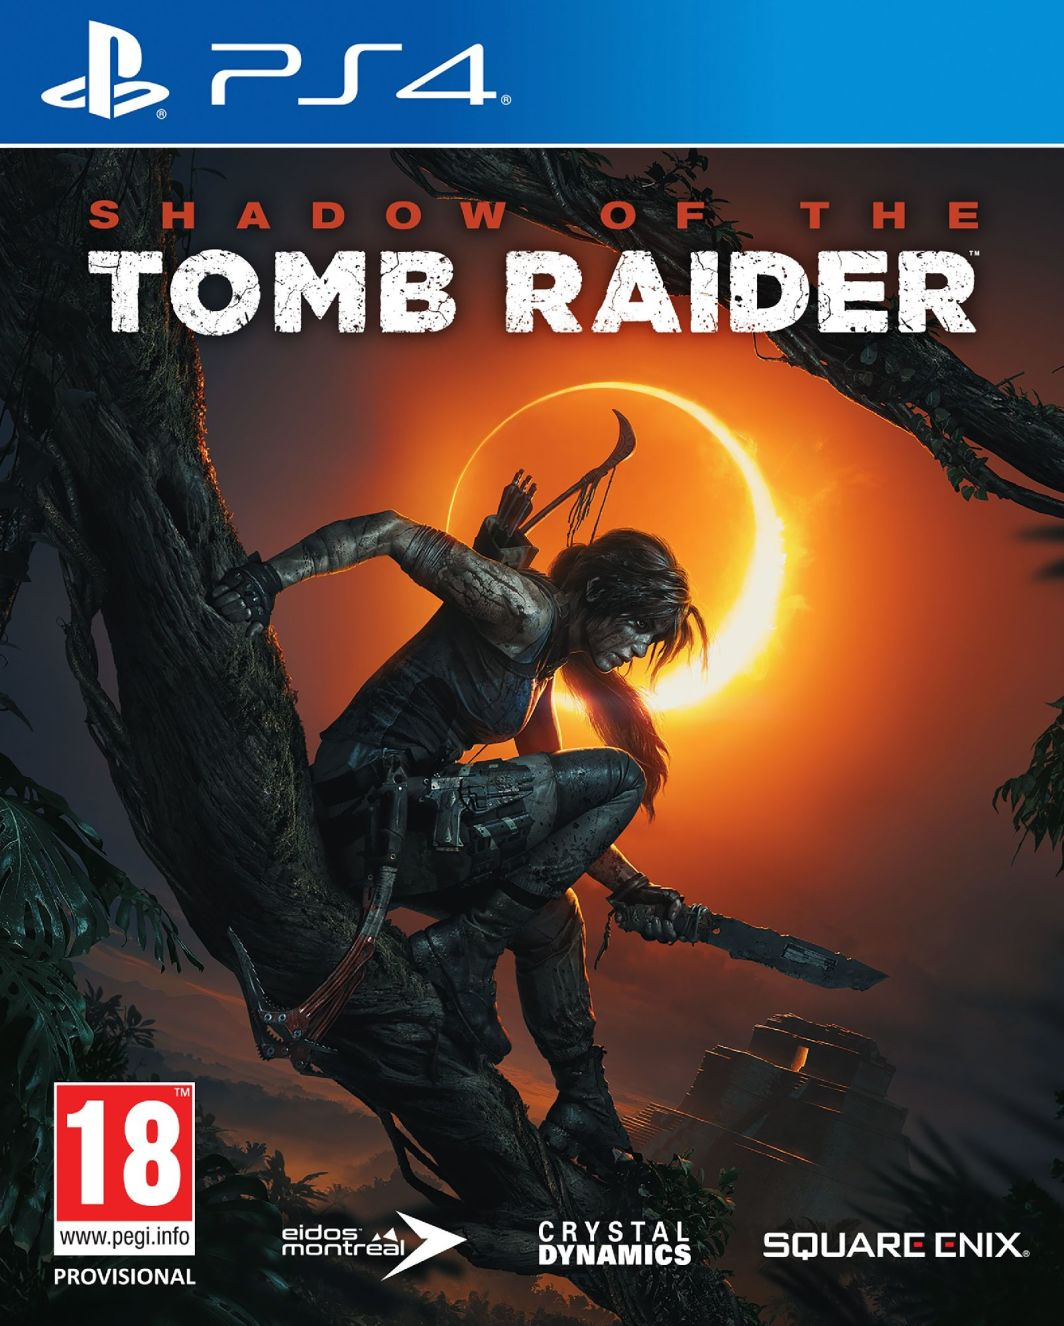 PS4: Shadow of Tomb Raider 1